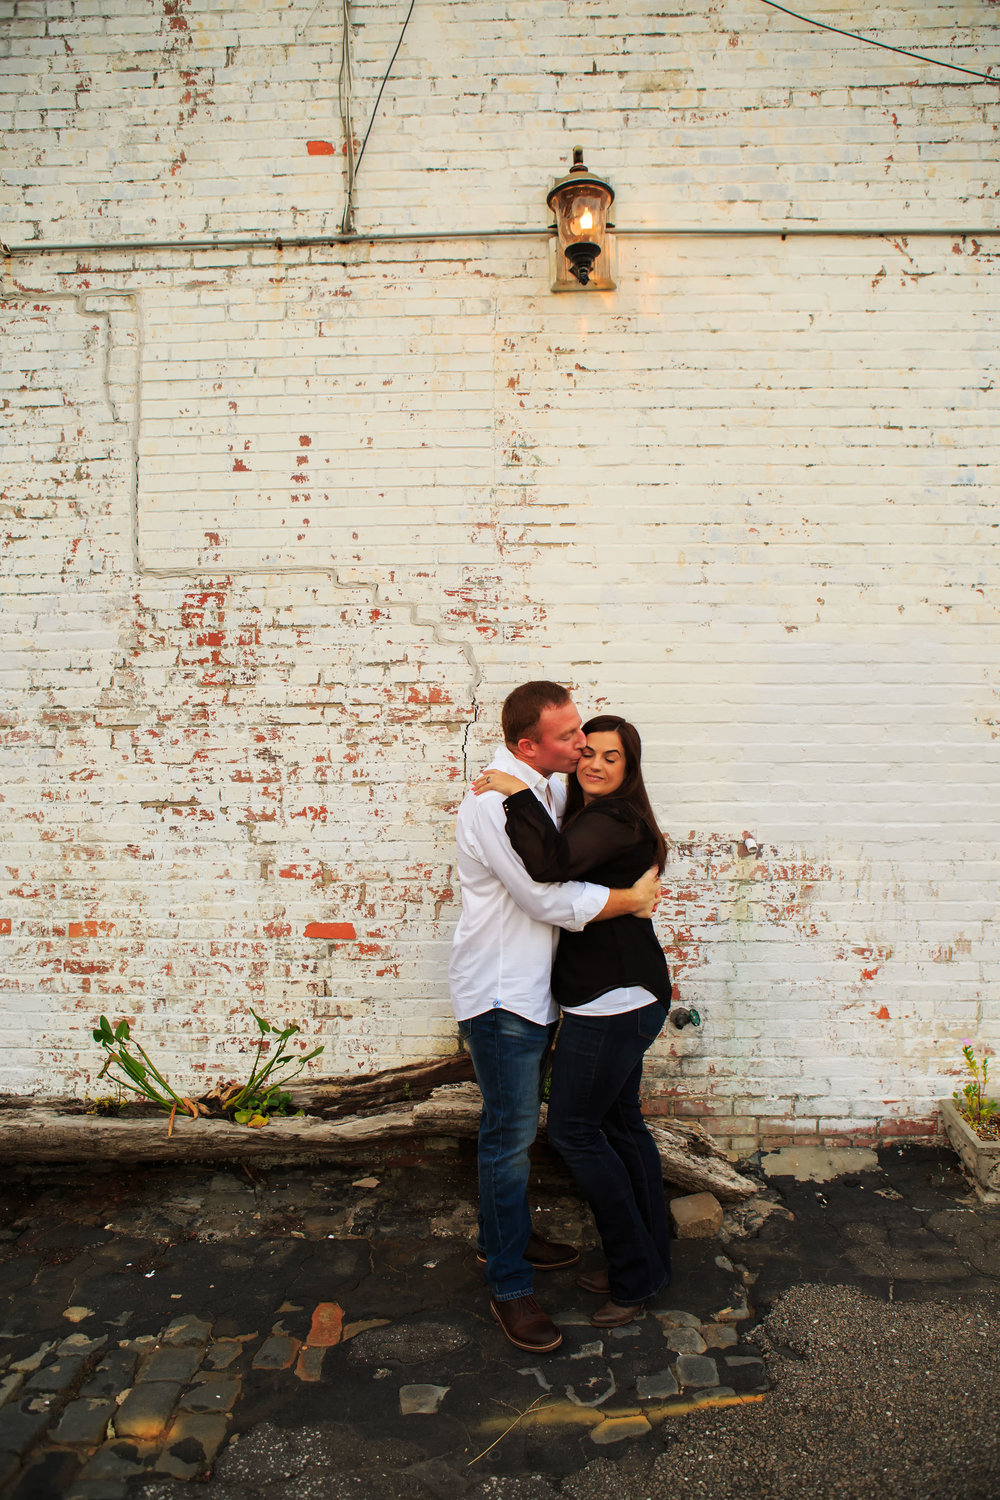 Wilmington_NC_Photographer_Tiffany_Abruzzo_Photography_Engagement_34.jpg